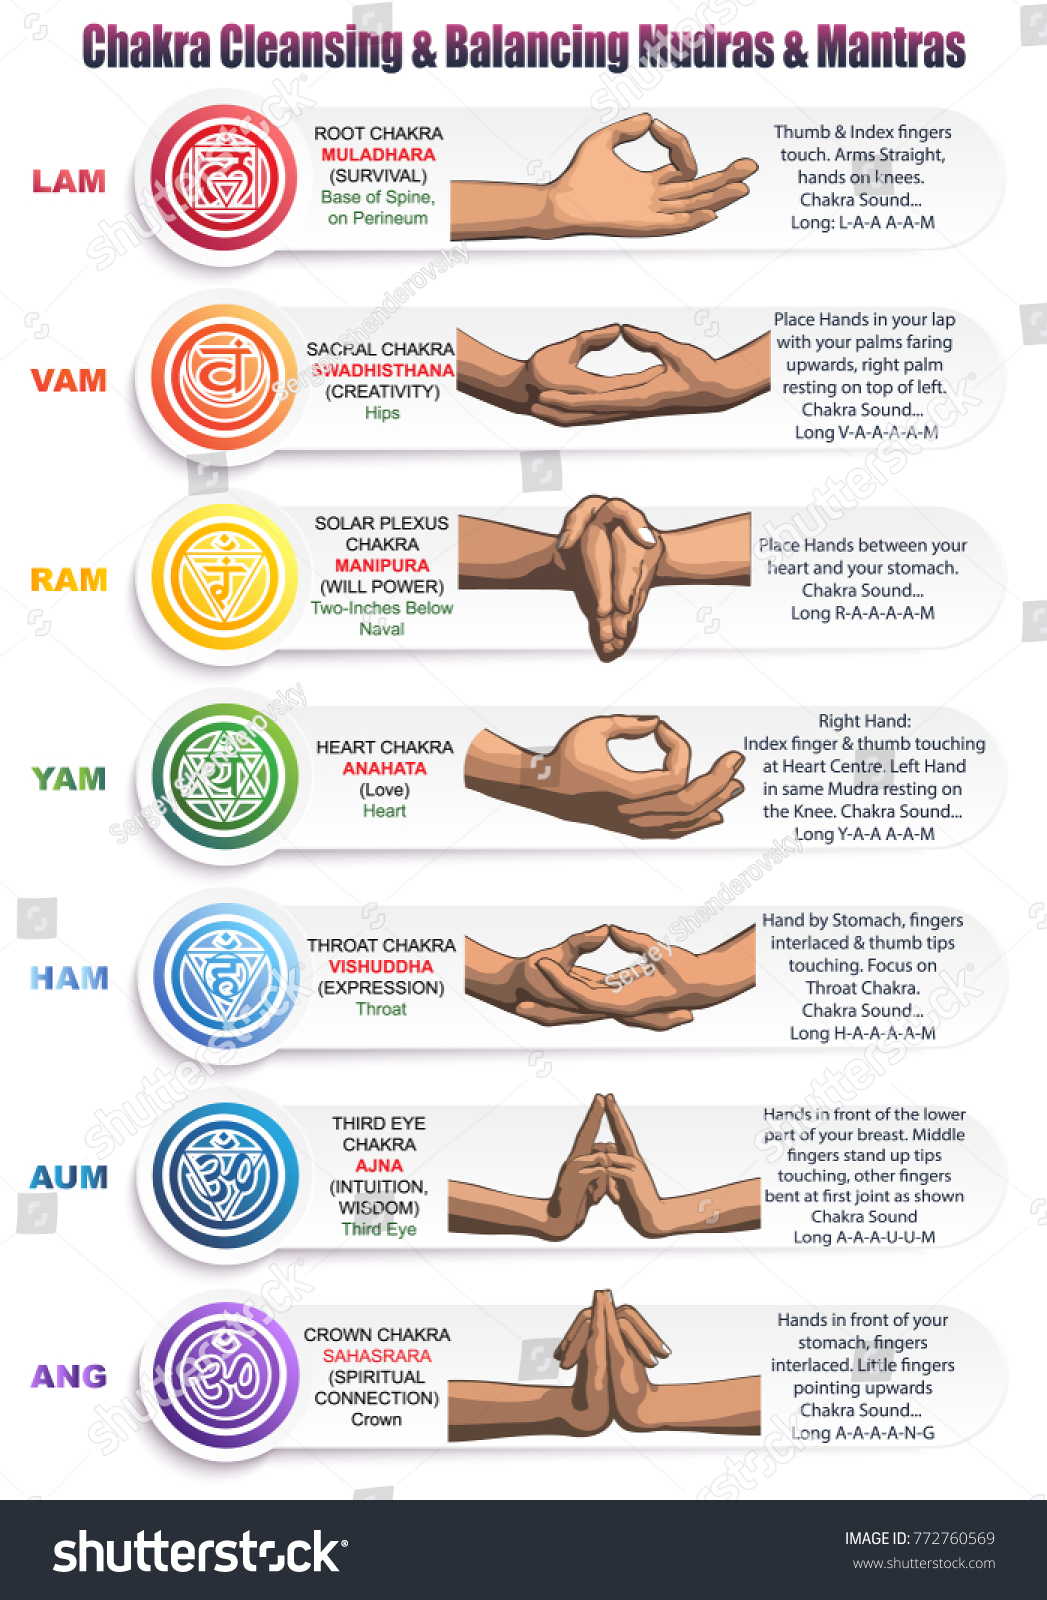 Table meanings colors symbols signs gestures stock vector a table of meanings colors symbols signs and gestures for chakras mudras biocorpaavc Images